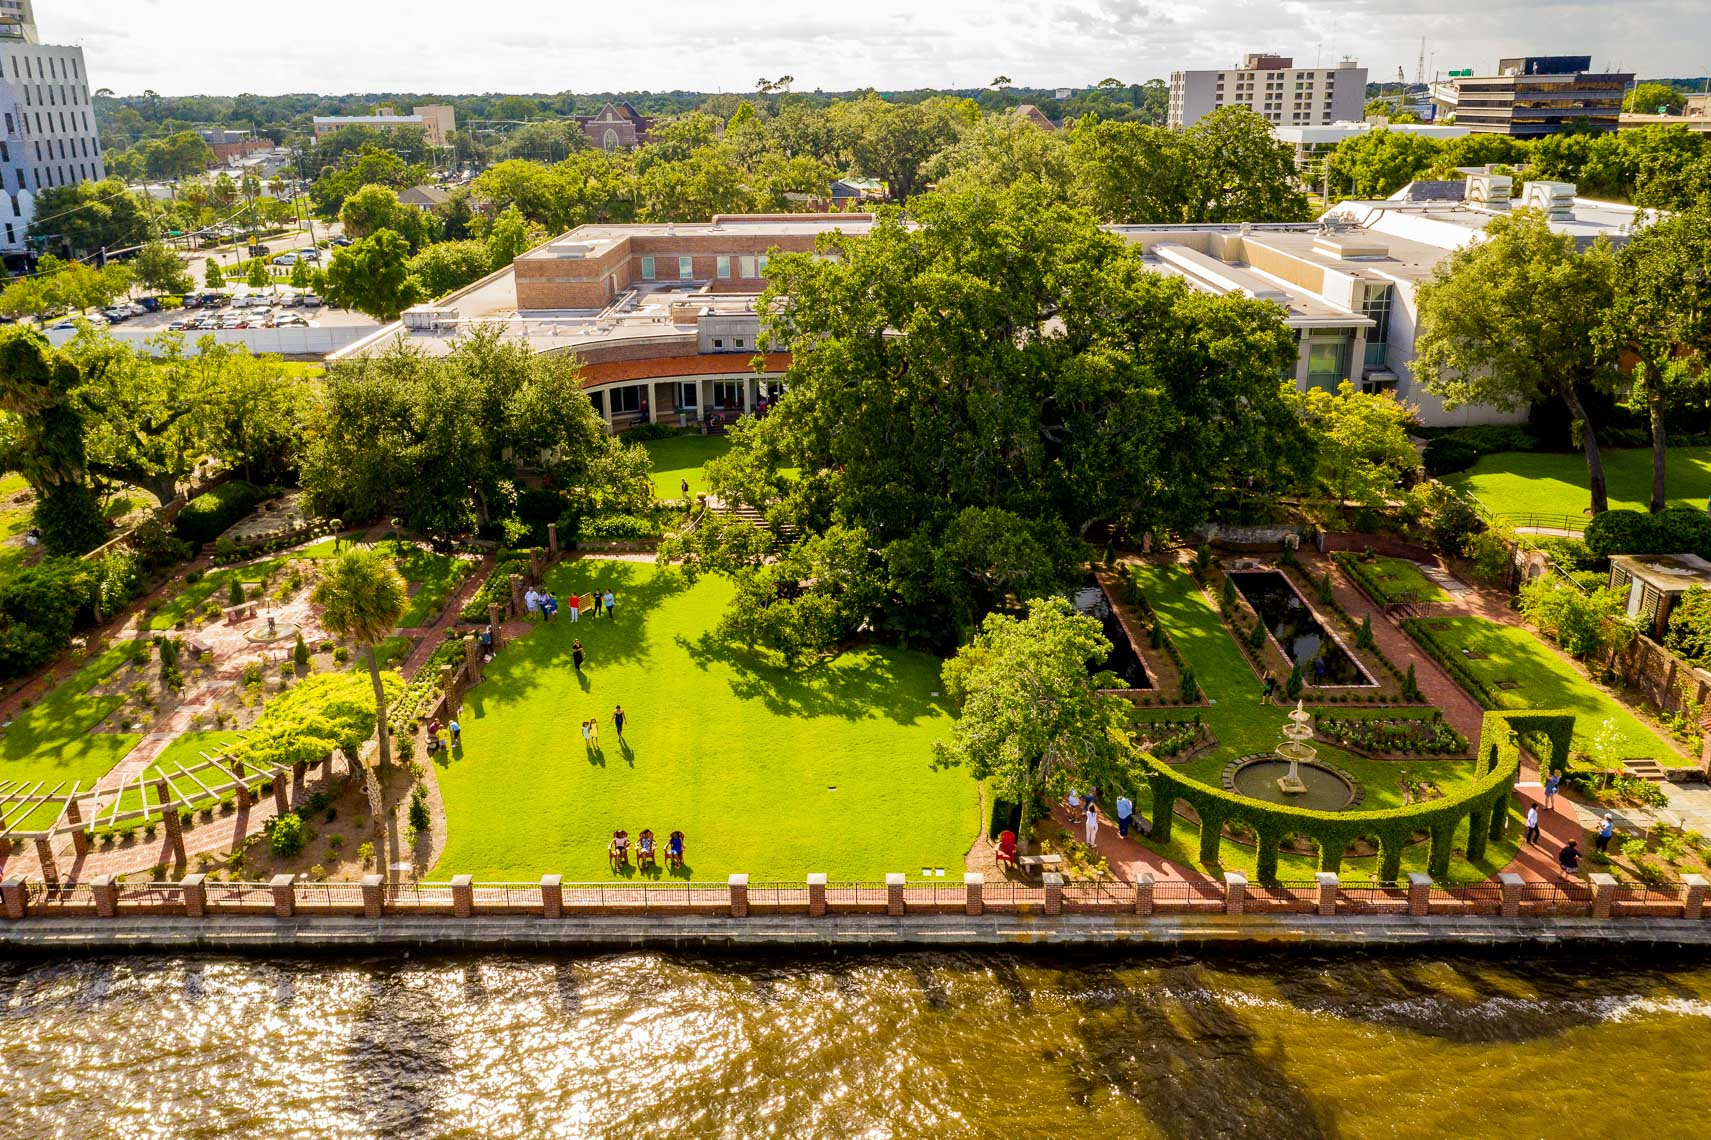 Drone view of the Cummer Museum and Gardens